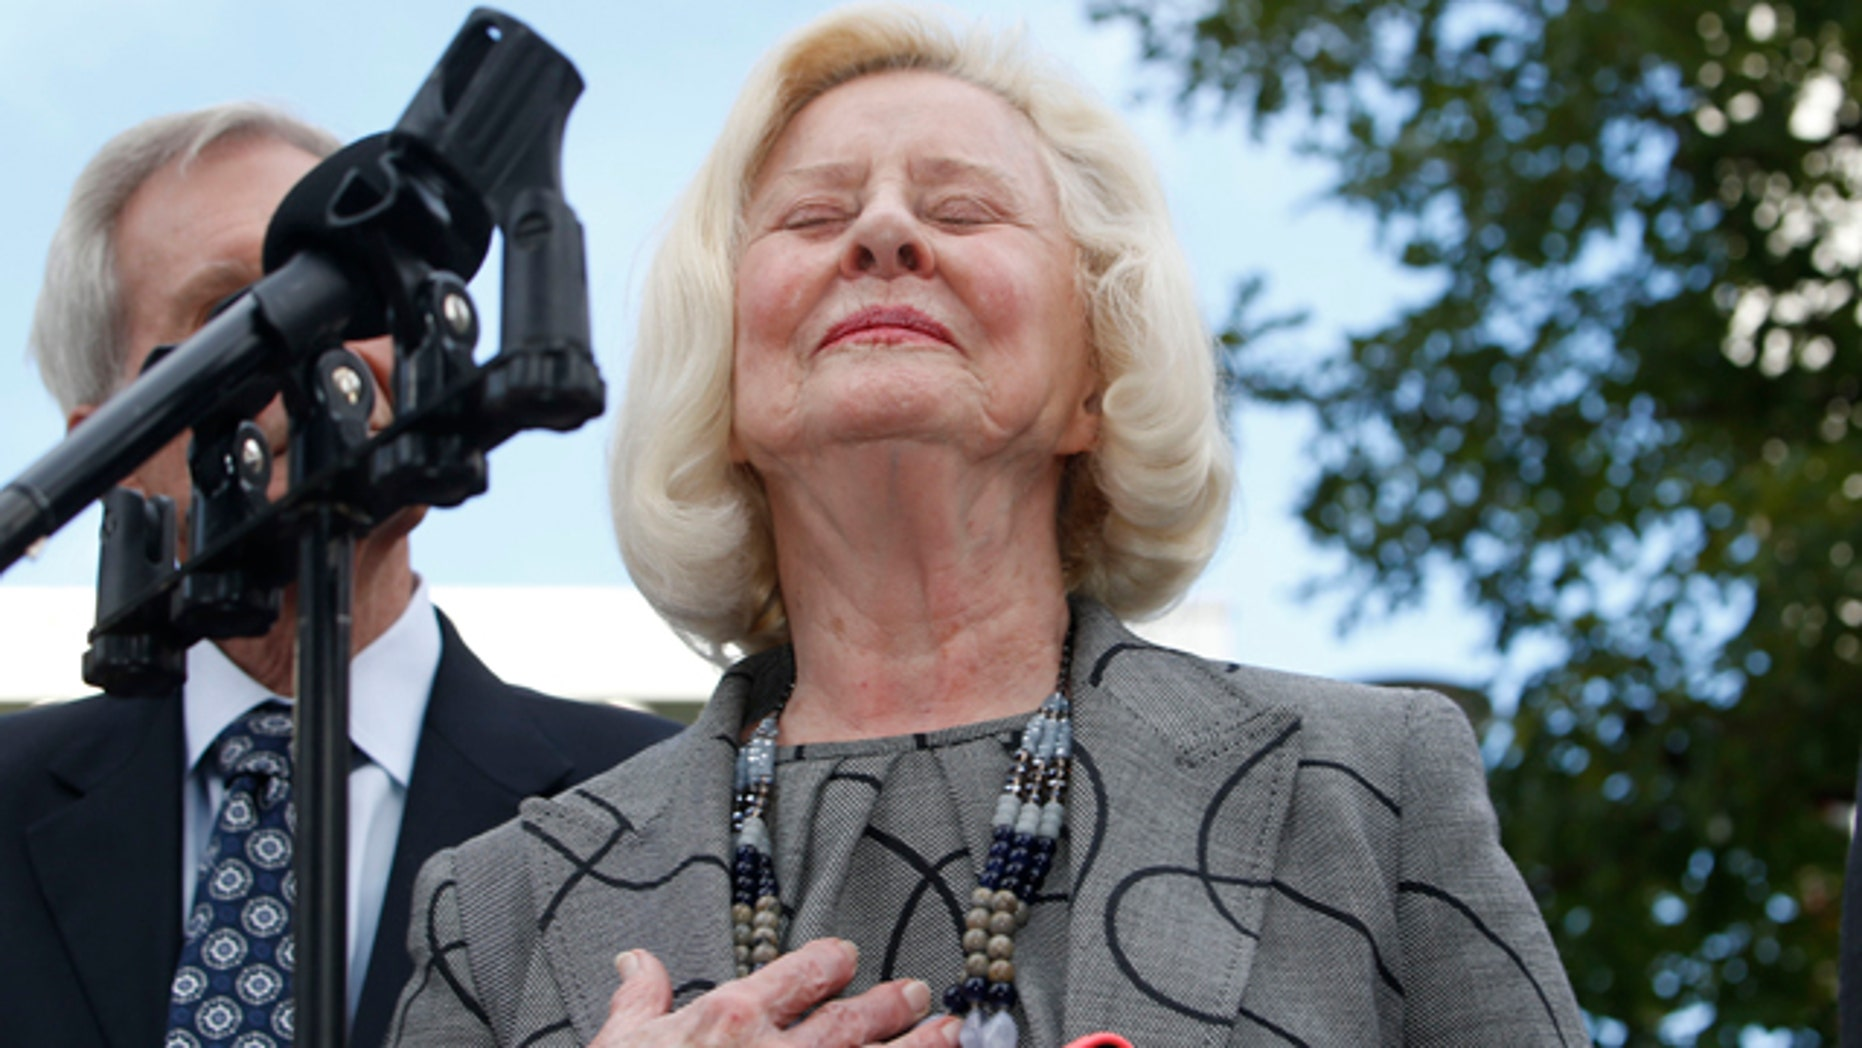 Sept. 21, 2015: Yvonne Bertolet reacts during a news conference regarding a verdict for the death of her daughter, Toni Henthorn, outside federal court in Denver. A federal jury convicted Toni Henthorn's husband, Harold Henthorn, of murder for pushing his wife to her death off a cliff in a remote part of Rocky Mountain National Park as they hiked to celebrate their wedding anniversary in 2012. (AP Photo/David Zalubowski)